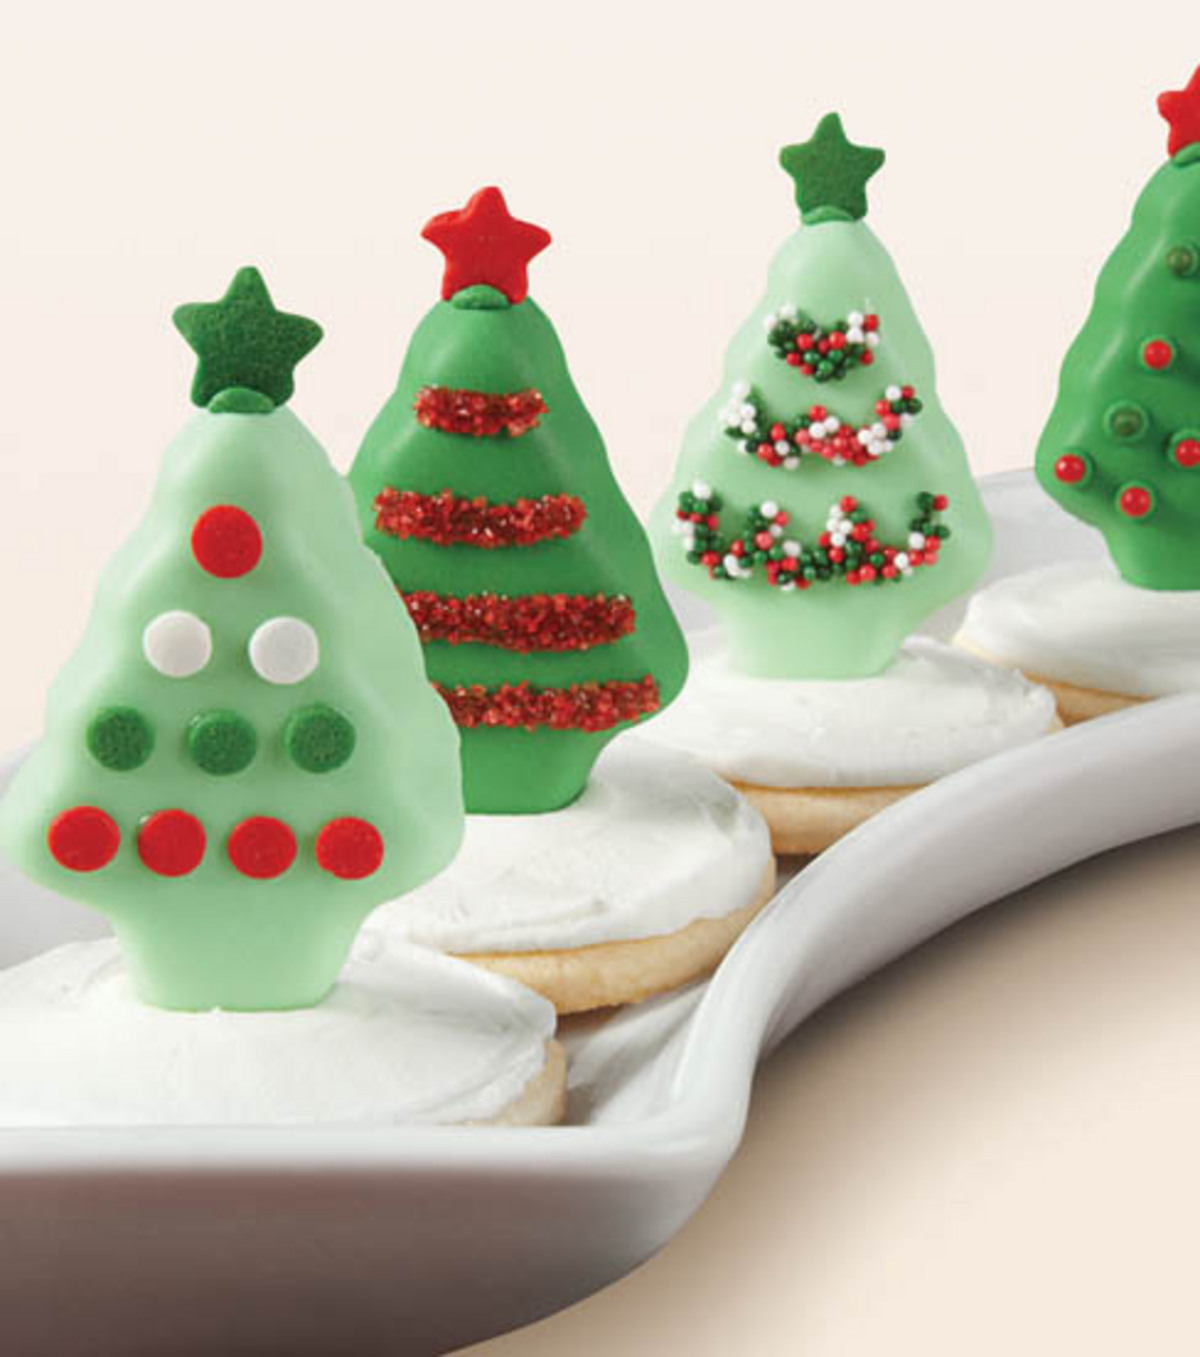 Field of Decorated Christmas Tree Cookies